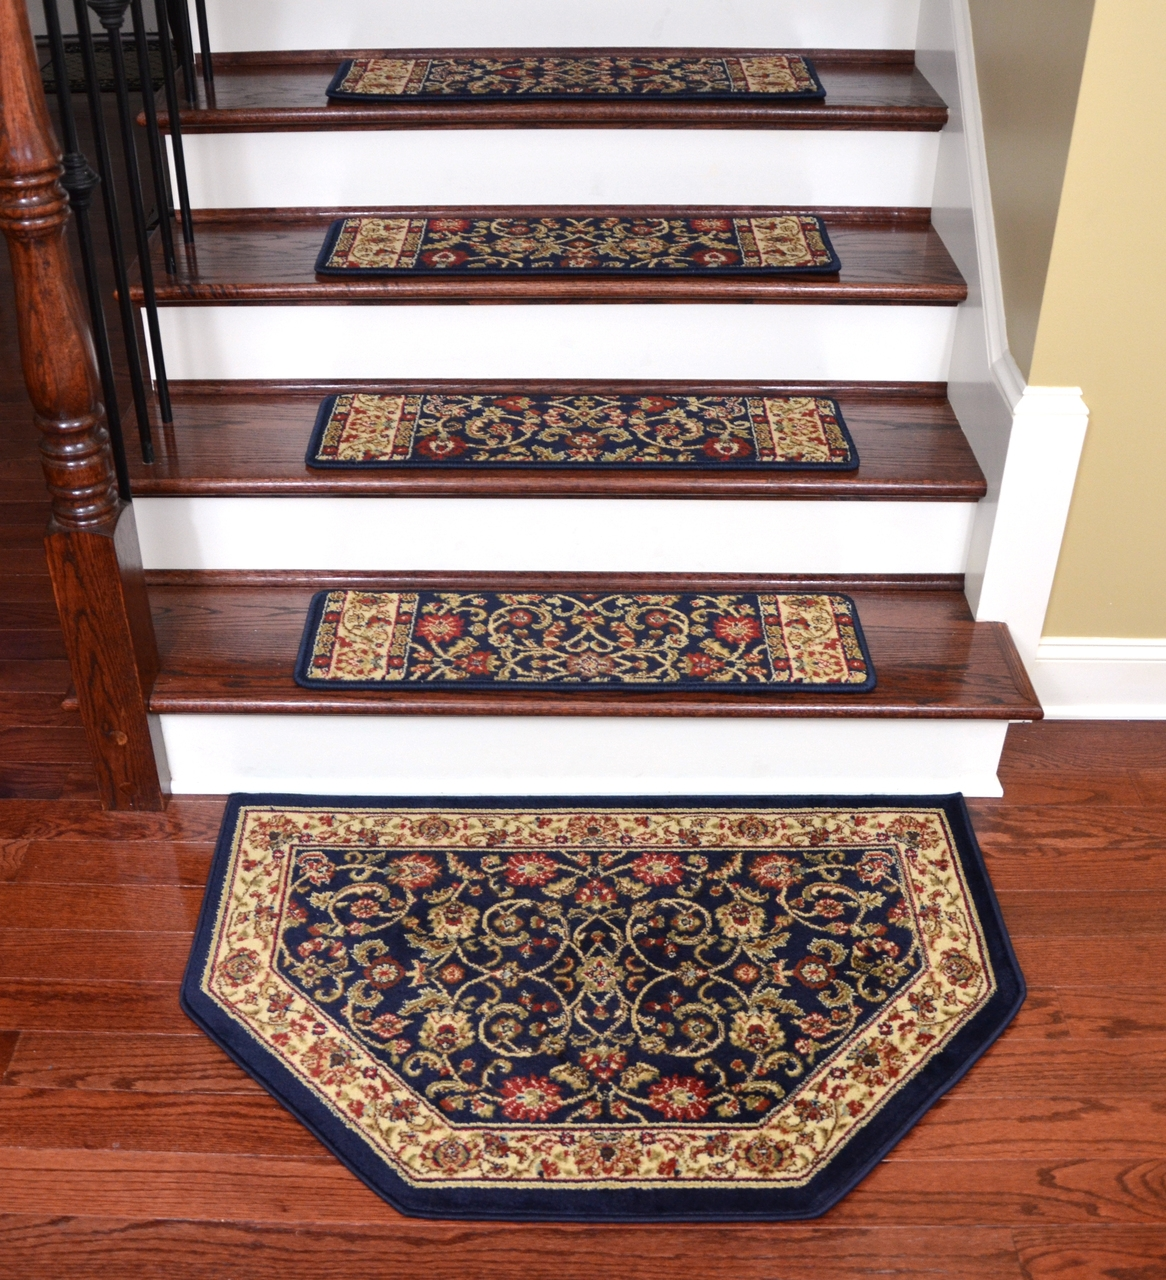 Rug Non Skid Stair Treads Rubber Mats With Holes Carpet Stair Throughout Non Skid Stair Tread Rugs (#17 of 20)